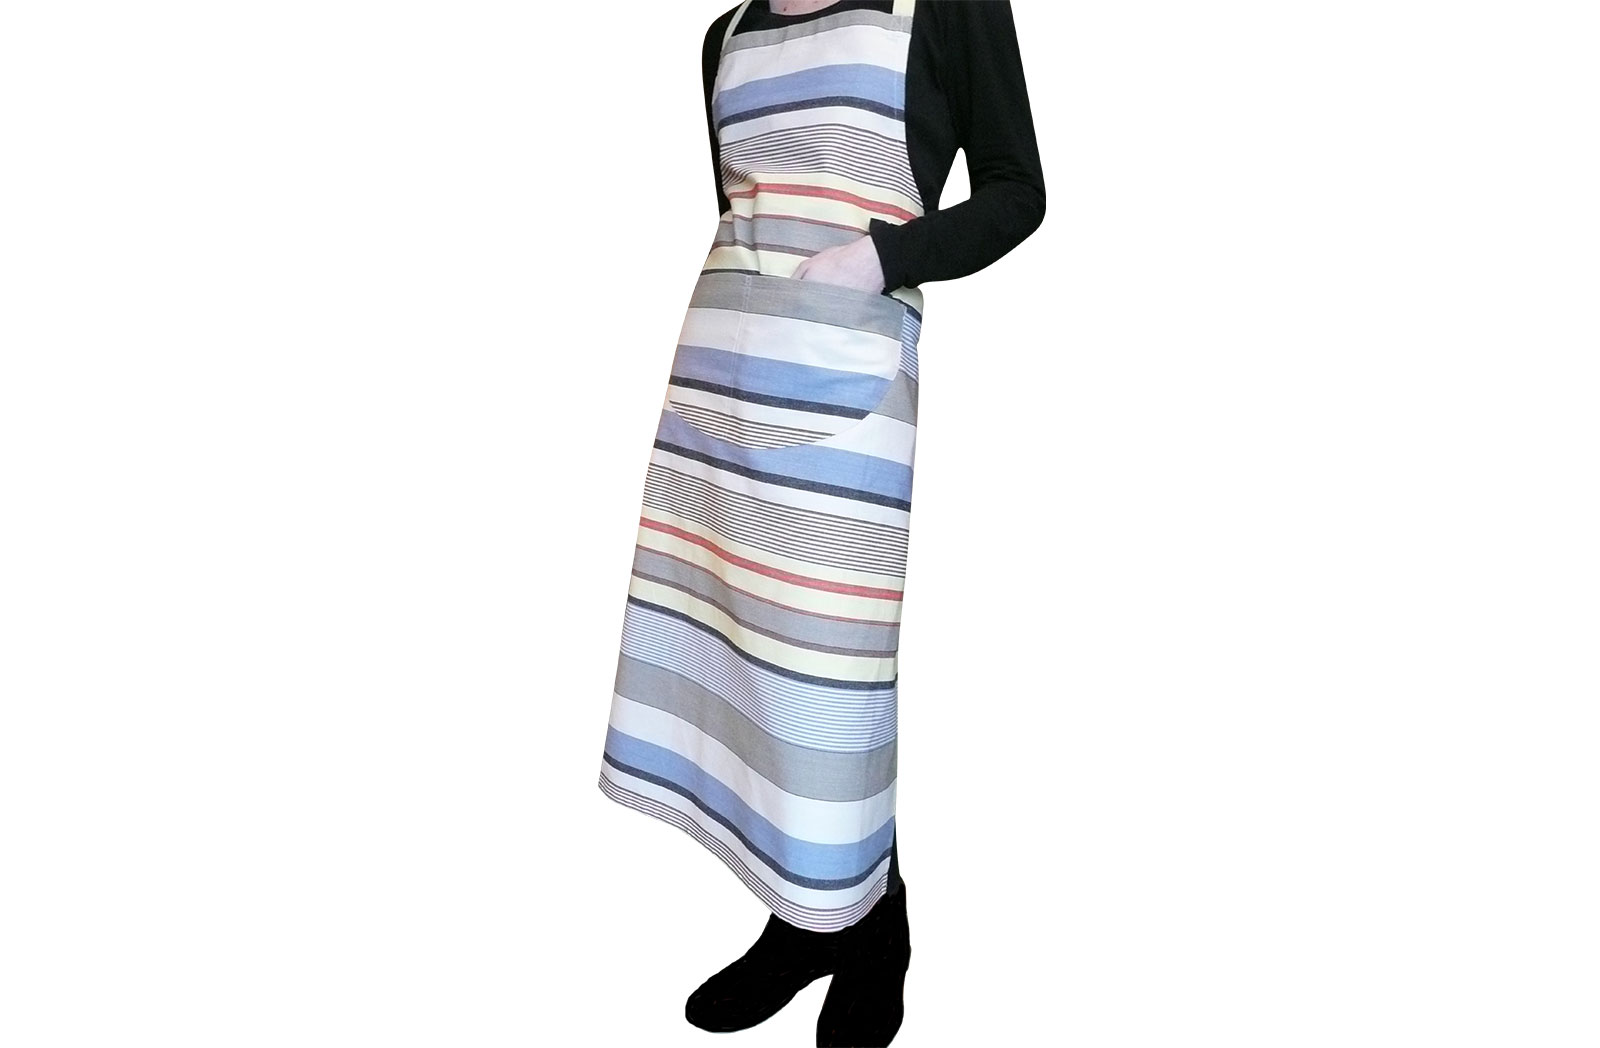 Stylish Aprons  in denim blue, oyster beige, light grey stripes